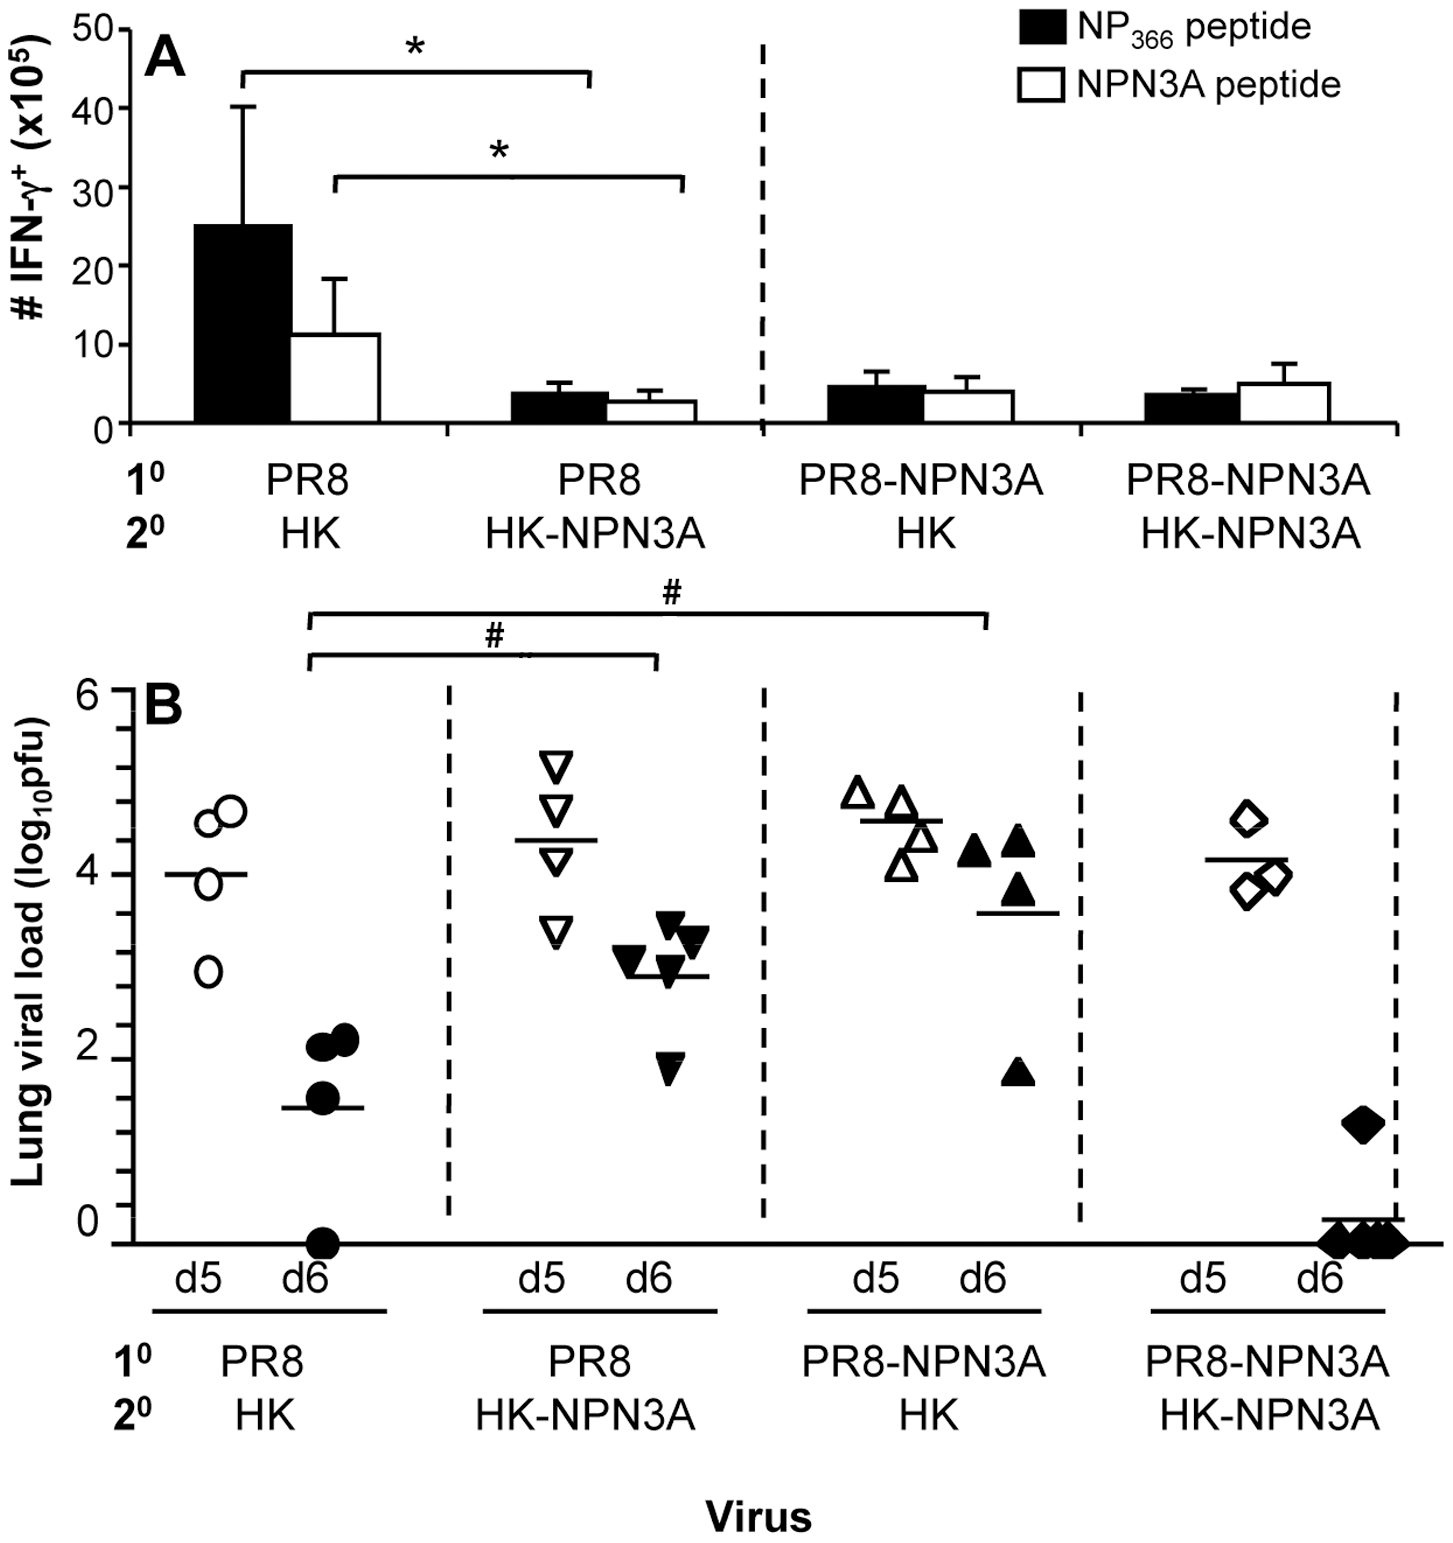 Heterologous 2<sup>o</sup> challenge with the wt HK and mutant HK-NPN3A viruses.